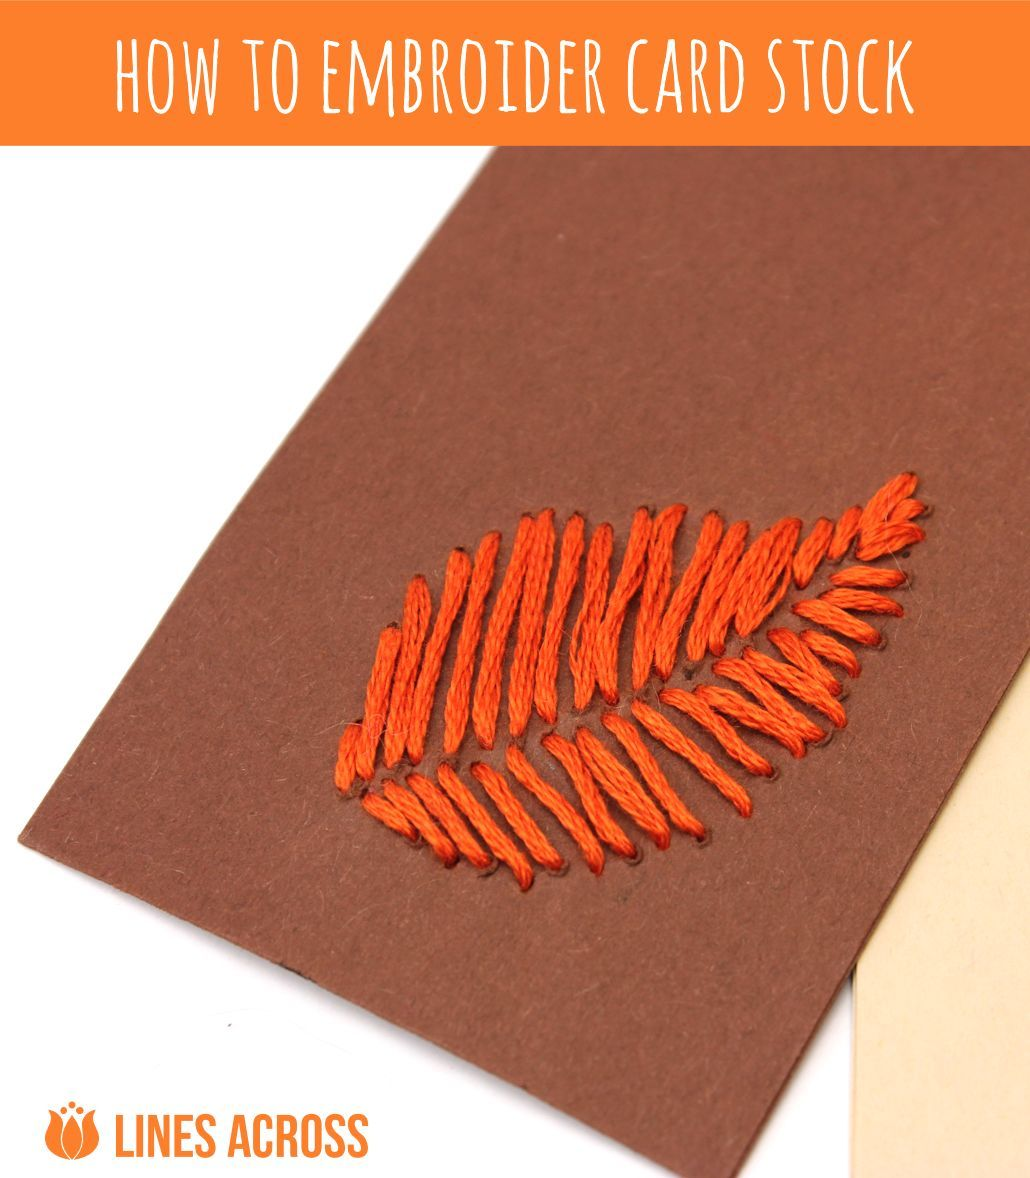 How to Embroider a leaf shape on Card Stock